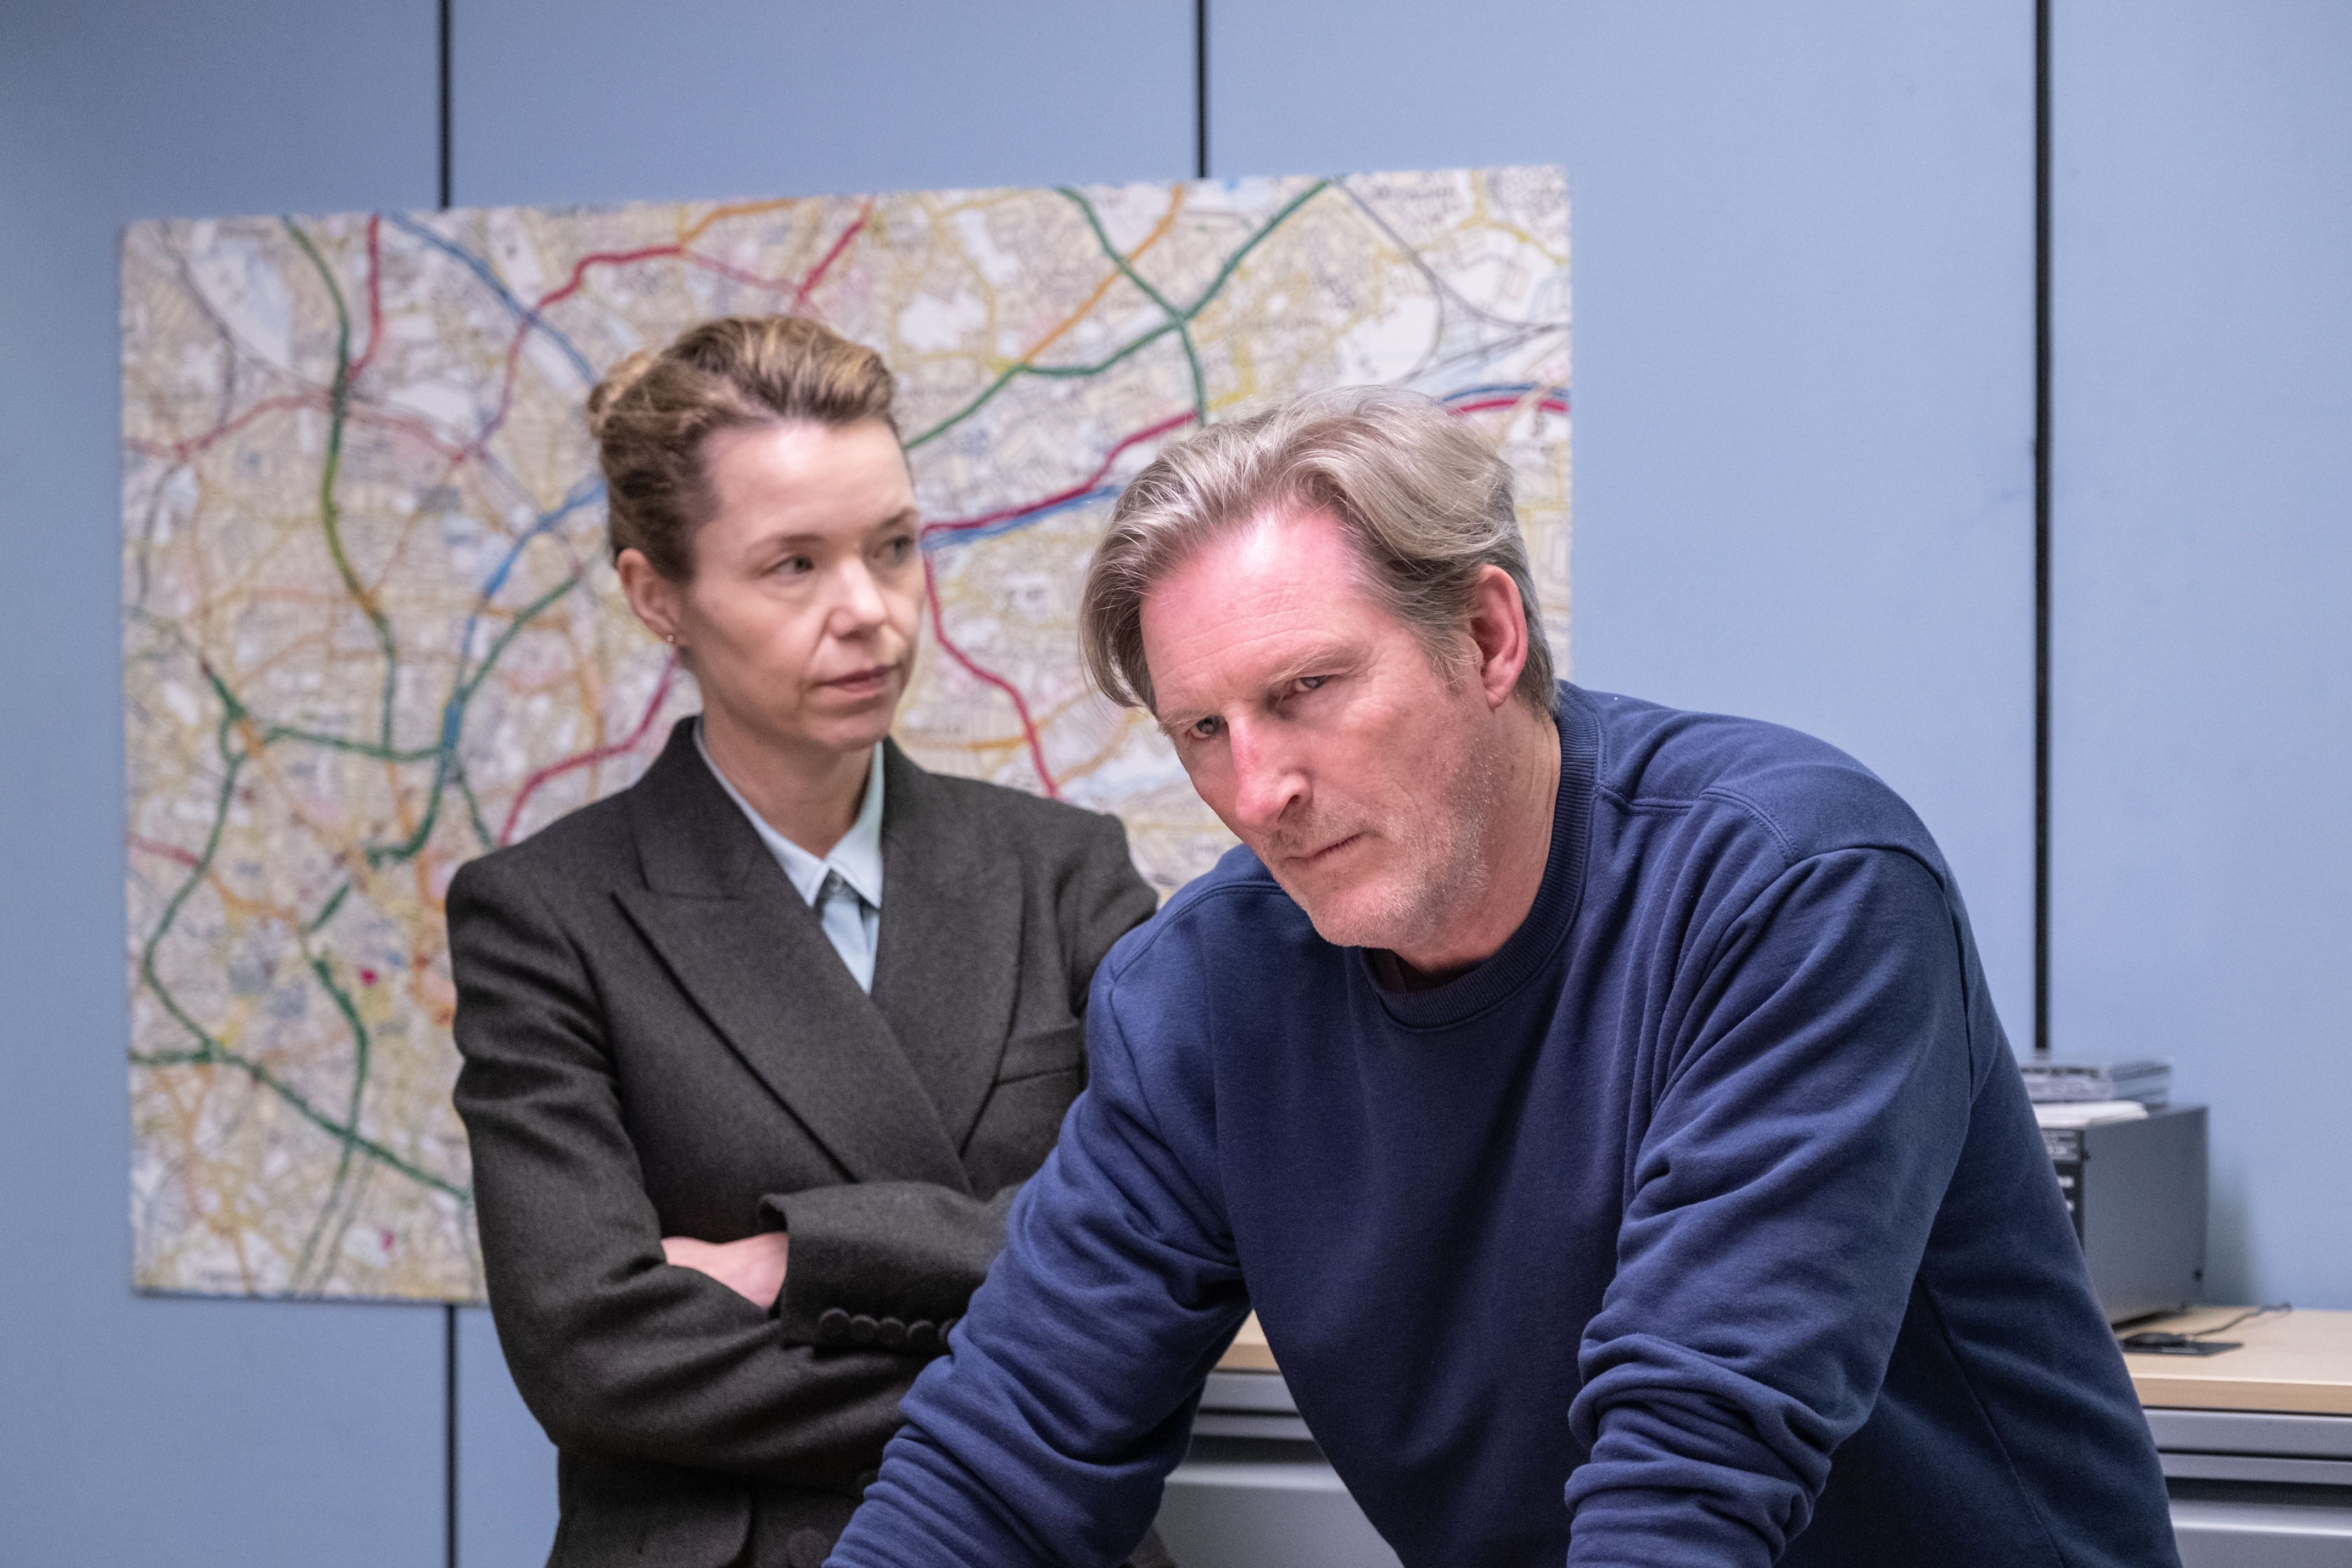 Line of Duty series 6: Cast, episodes, air date and plot